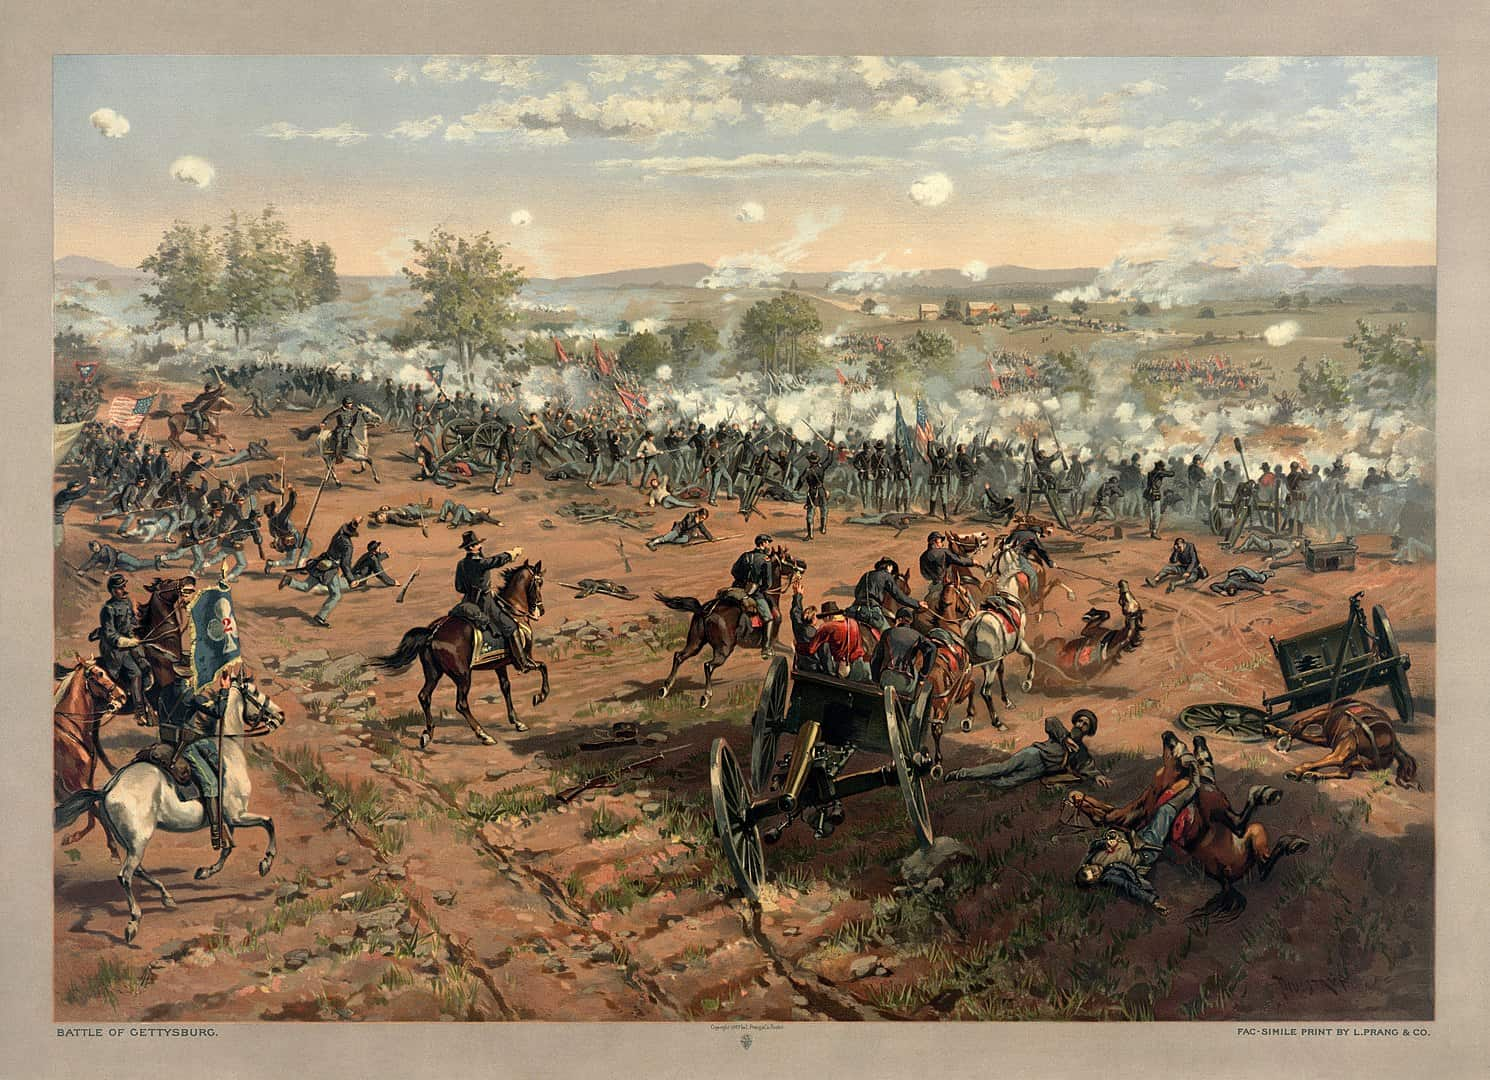 civil war facts, historical events facts